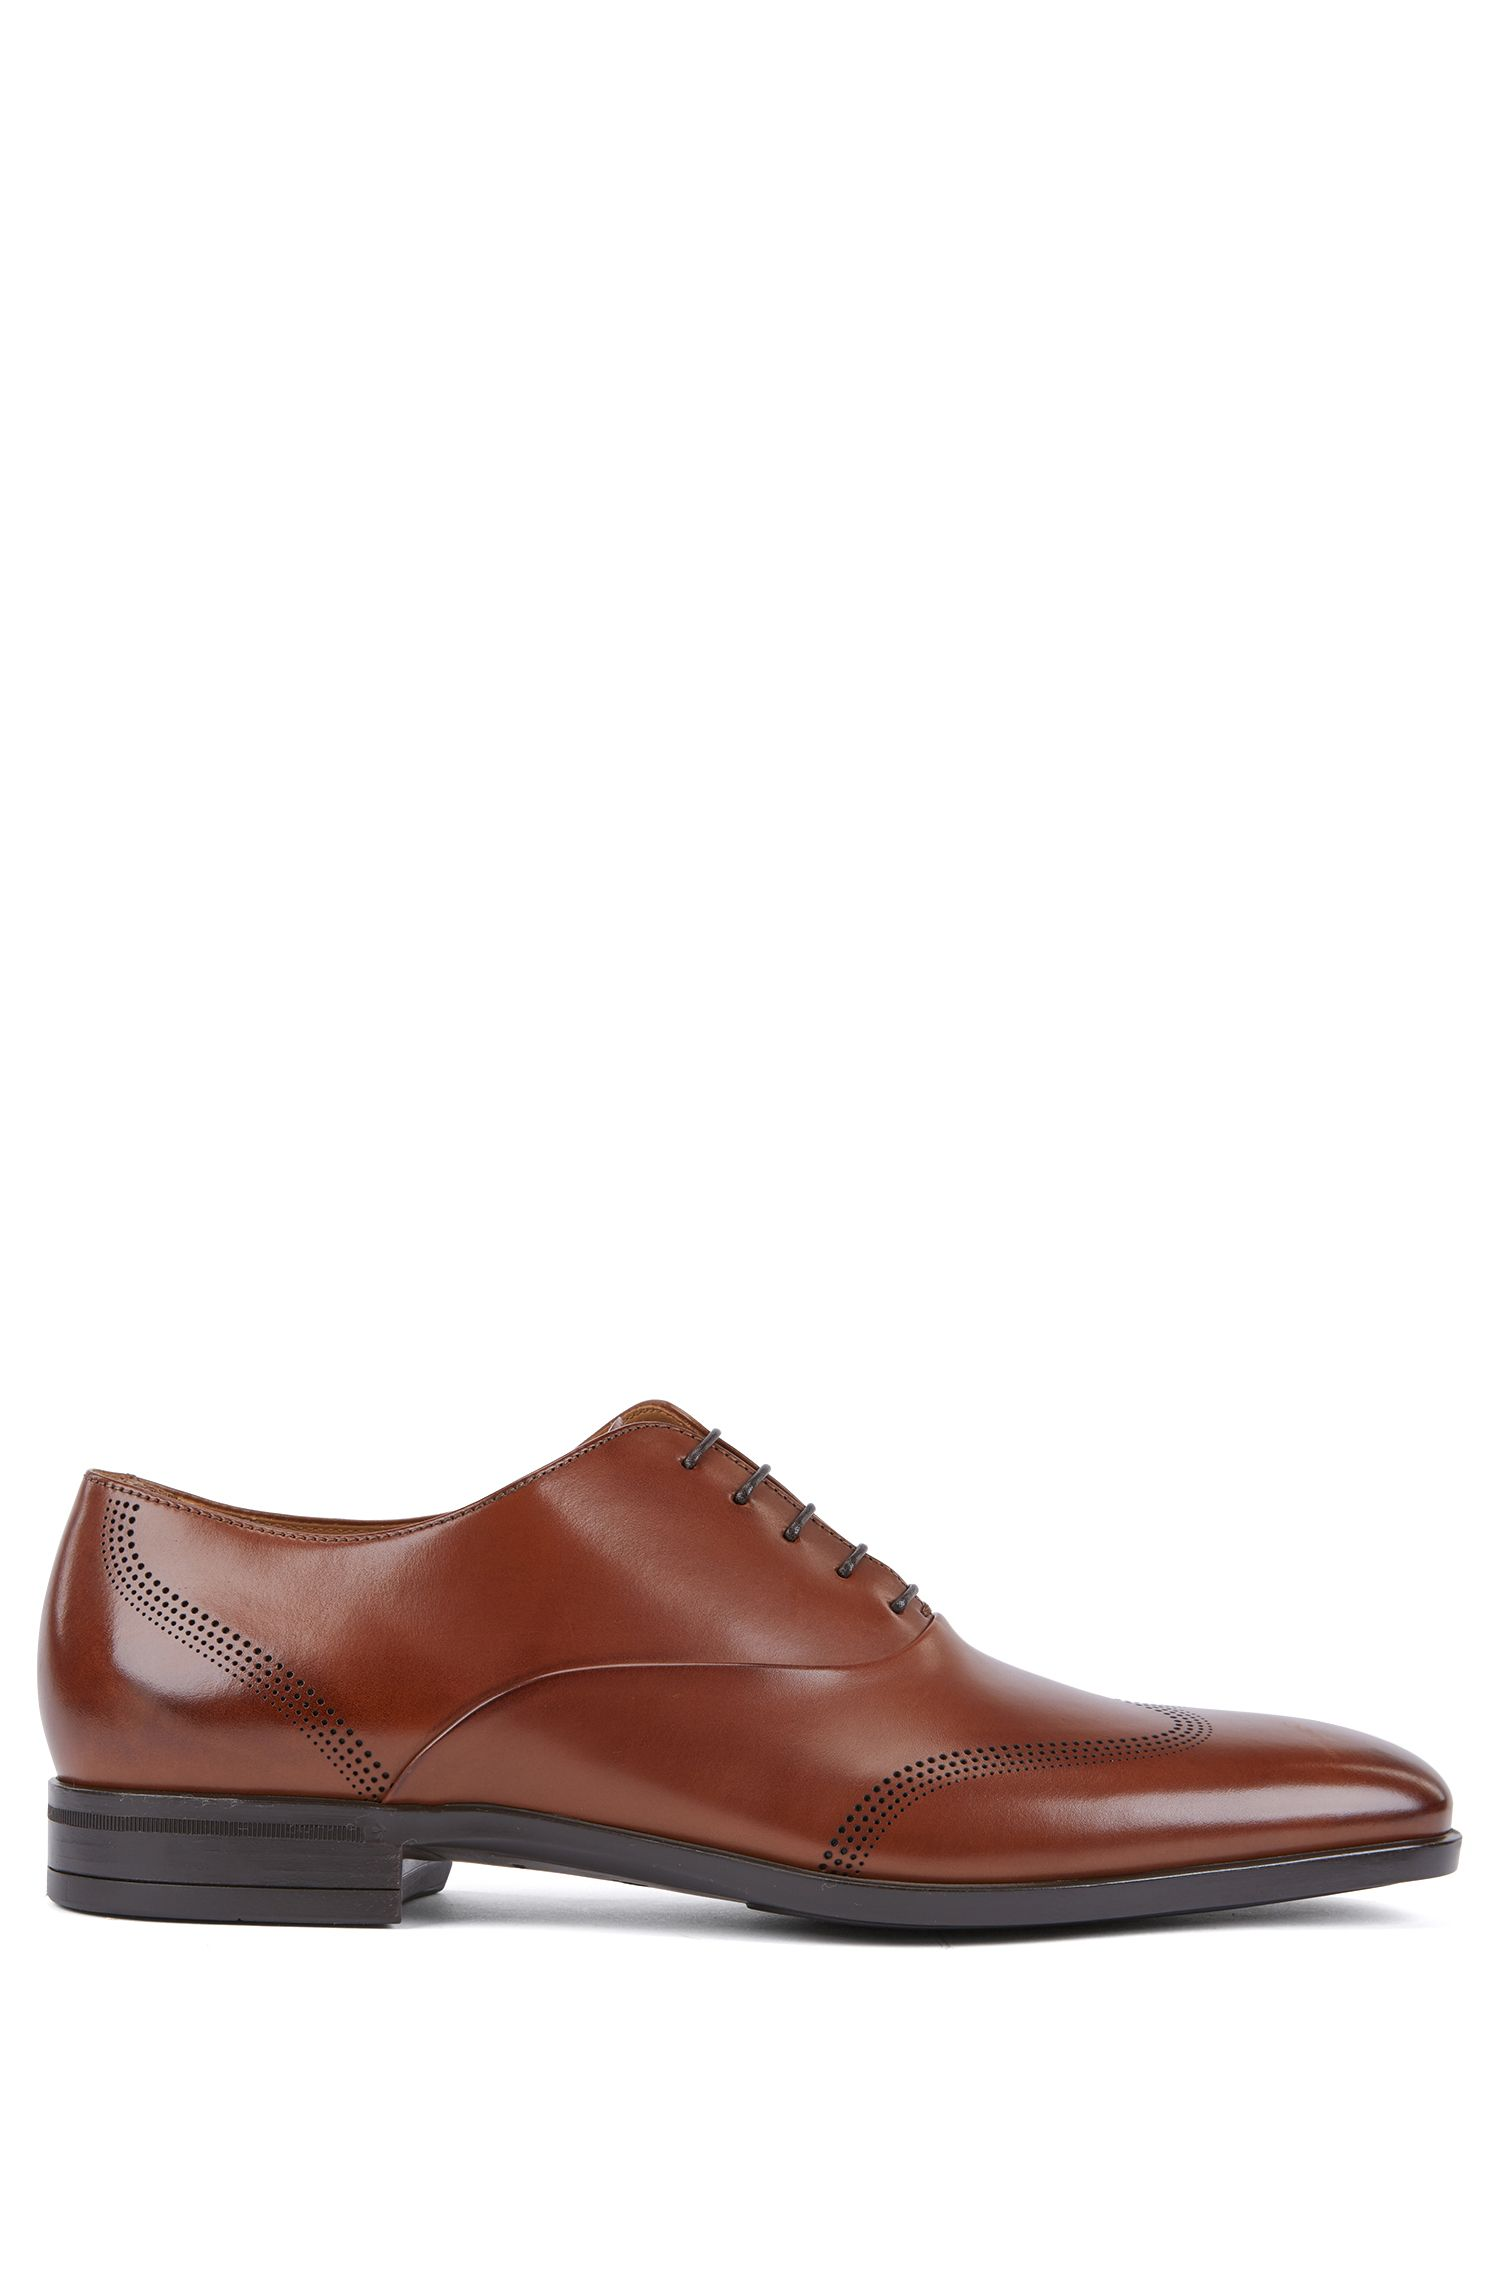 Hugo Boss - Oxford shoes in calf leather with laser-cut detailing - 1